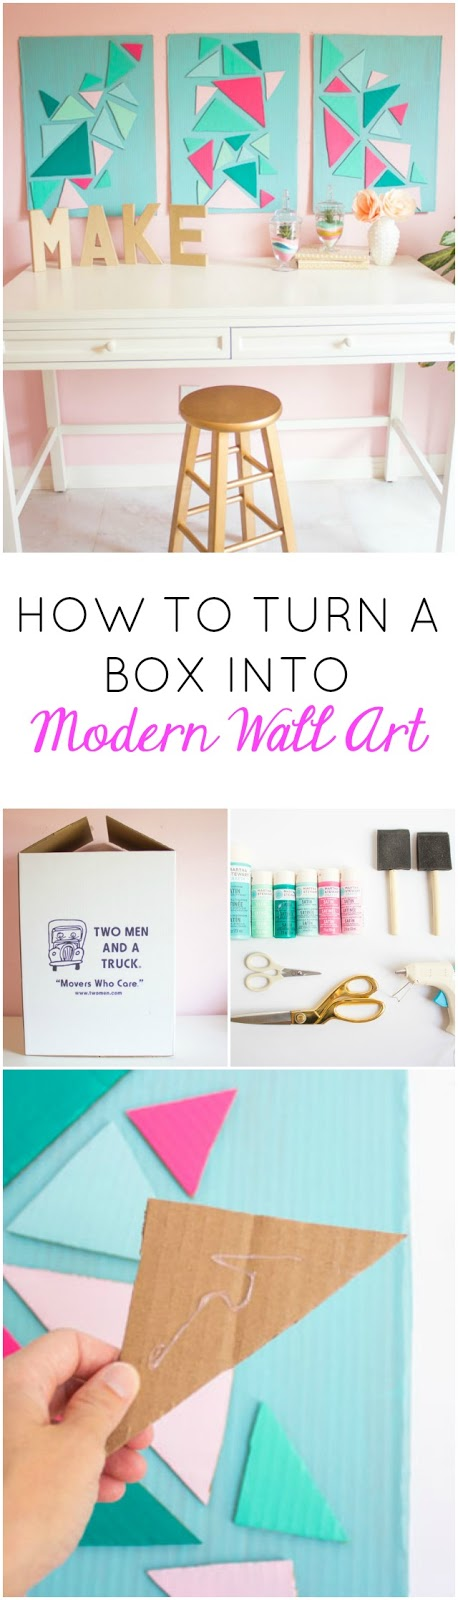 How to turn a cardboard box into modern wall art - so cool!